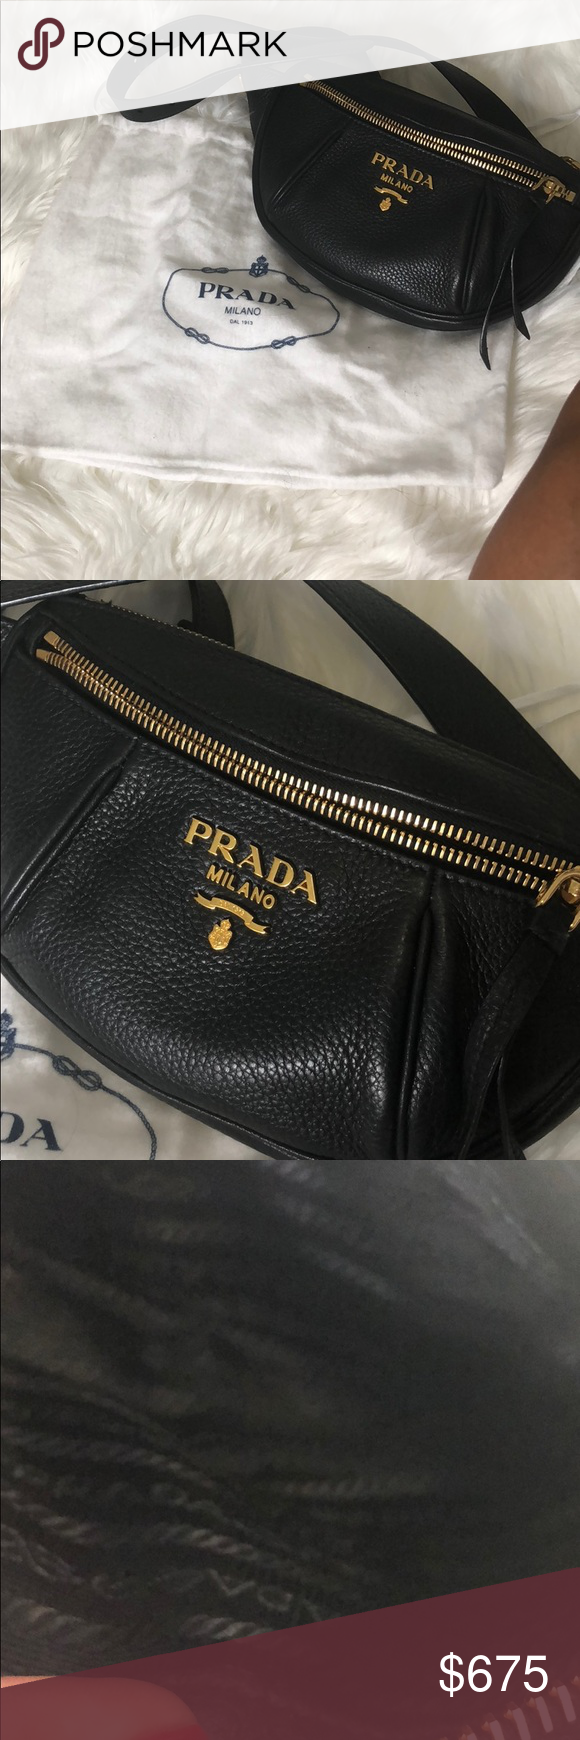 82e5d2299fea Prada Daino Belt Bag Fanny pack Gently worn! No visible wear marks Fits belt  size 24-32 2018 Summer release Bag included as seen 100% AUTHENTIC..card ...